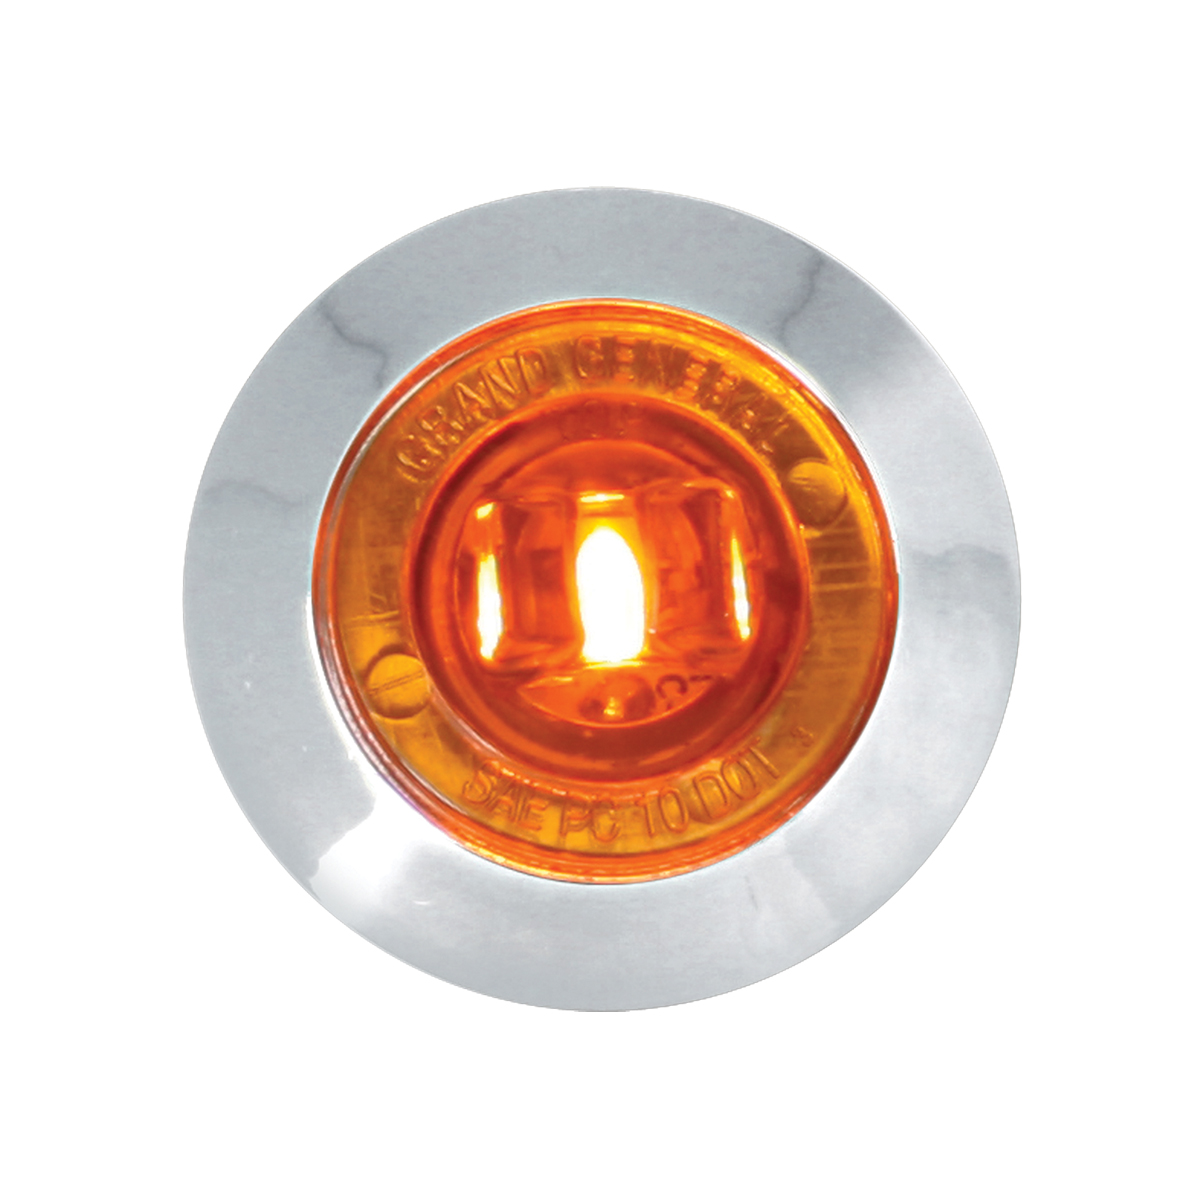 "75220 1-1/4"" Dia. Dual Function LED Light with Chrome Plastic Bezel and Nut"